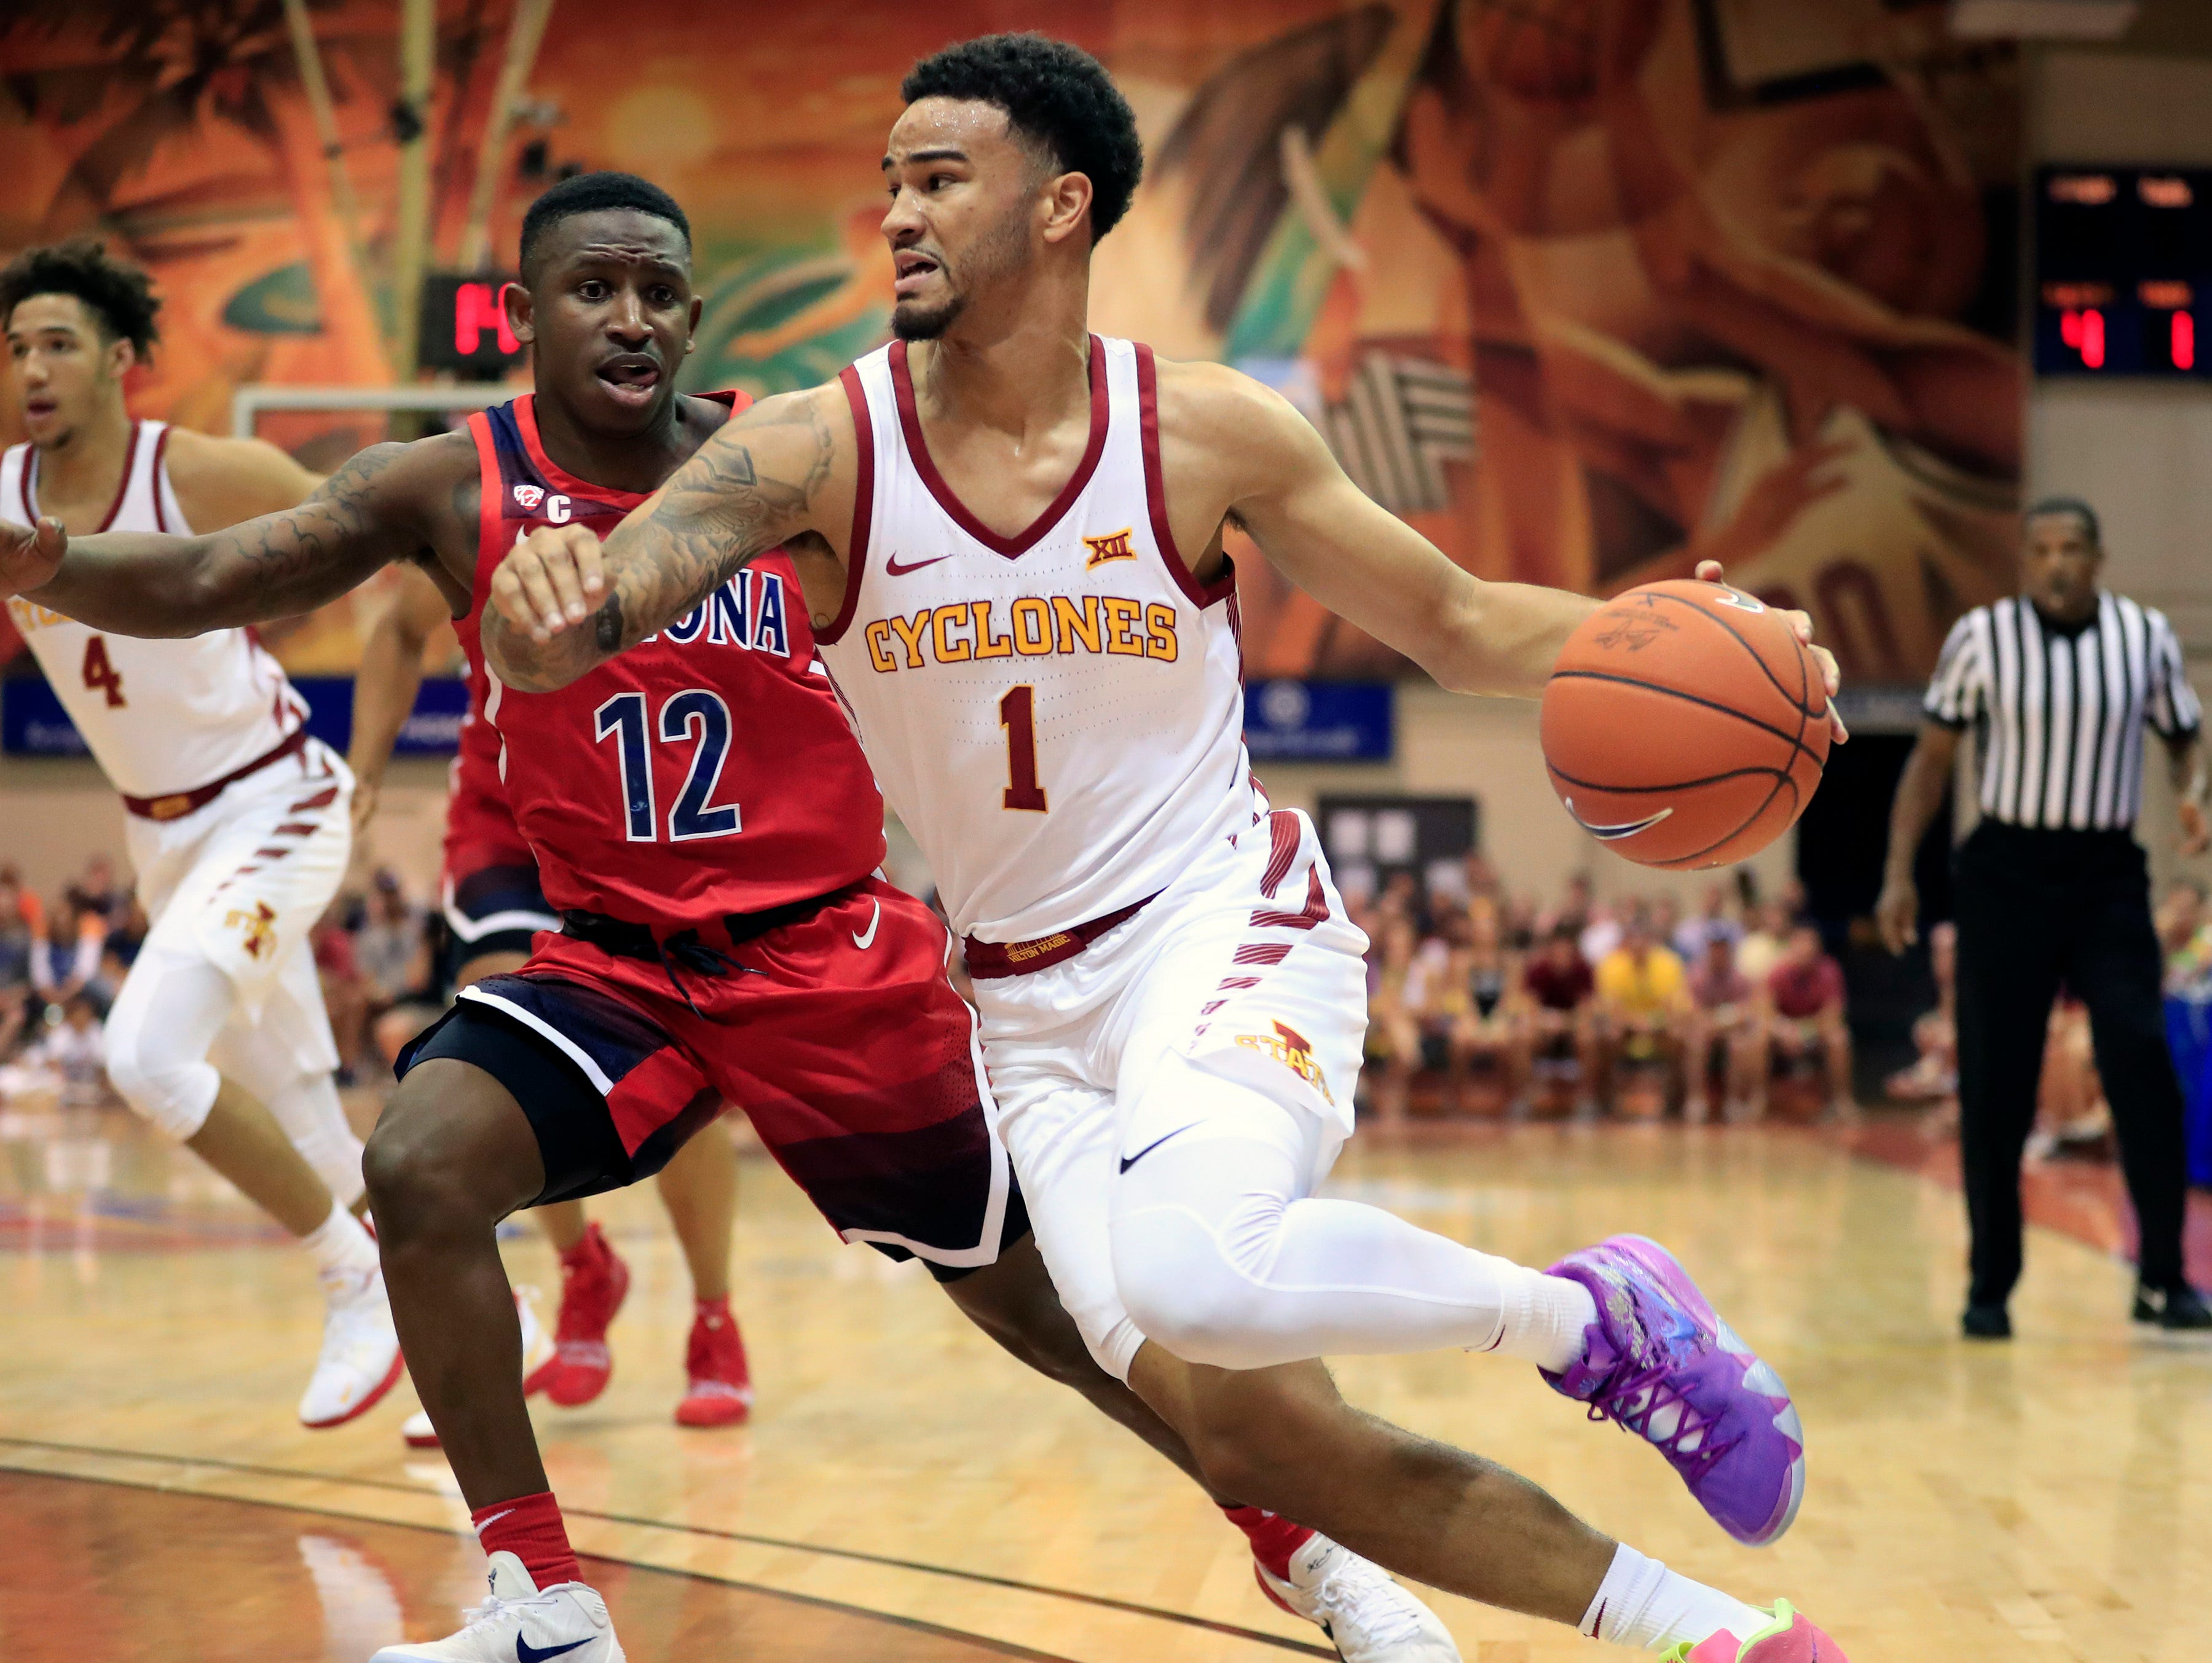 Iowa State guard Nick Weiler-Babb (1) dribbles around Arizona guard Justin Coleman (12) during the first half of an NCAA college basketball game at the Maui Invitational, Monday, Nov. 19, 2018, in Lahaina, Hawaii.